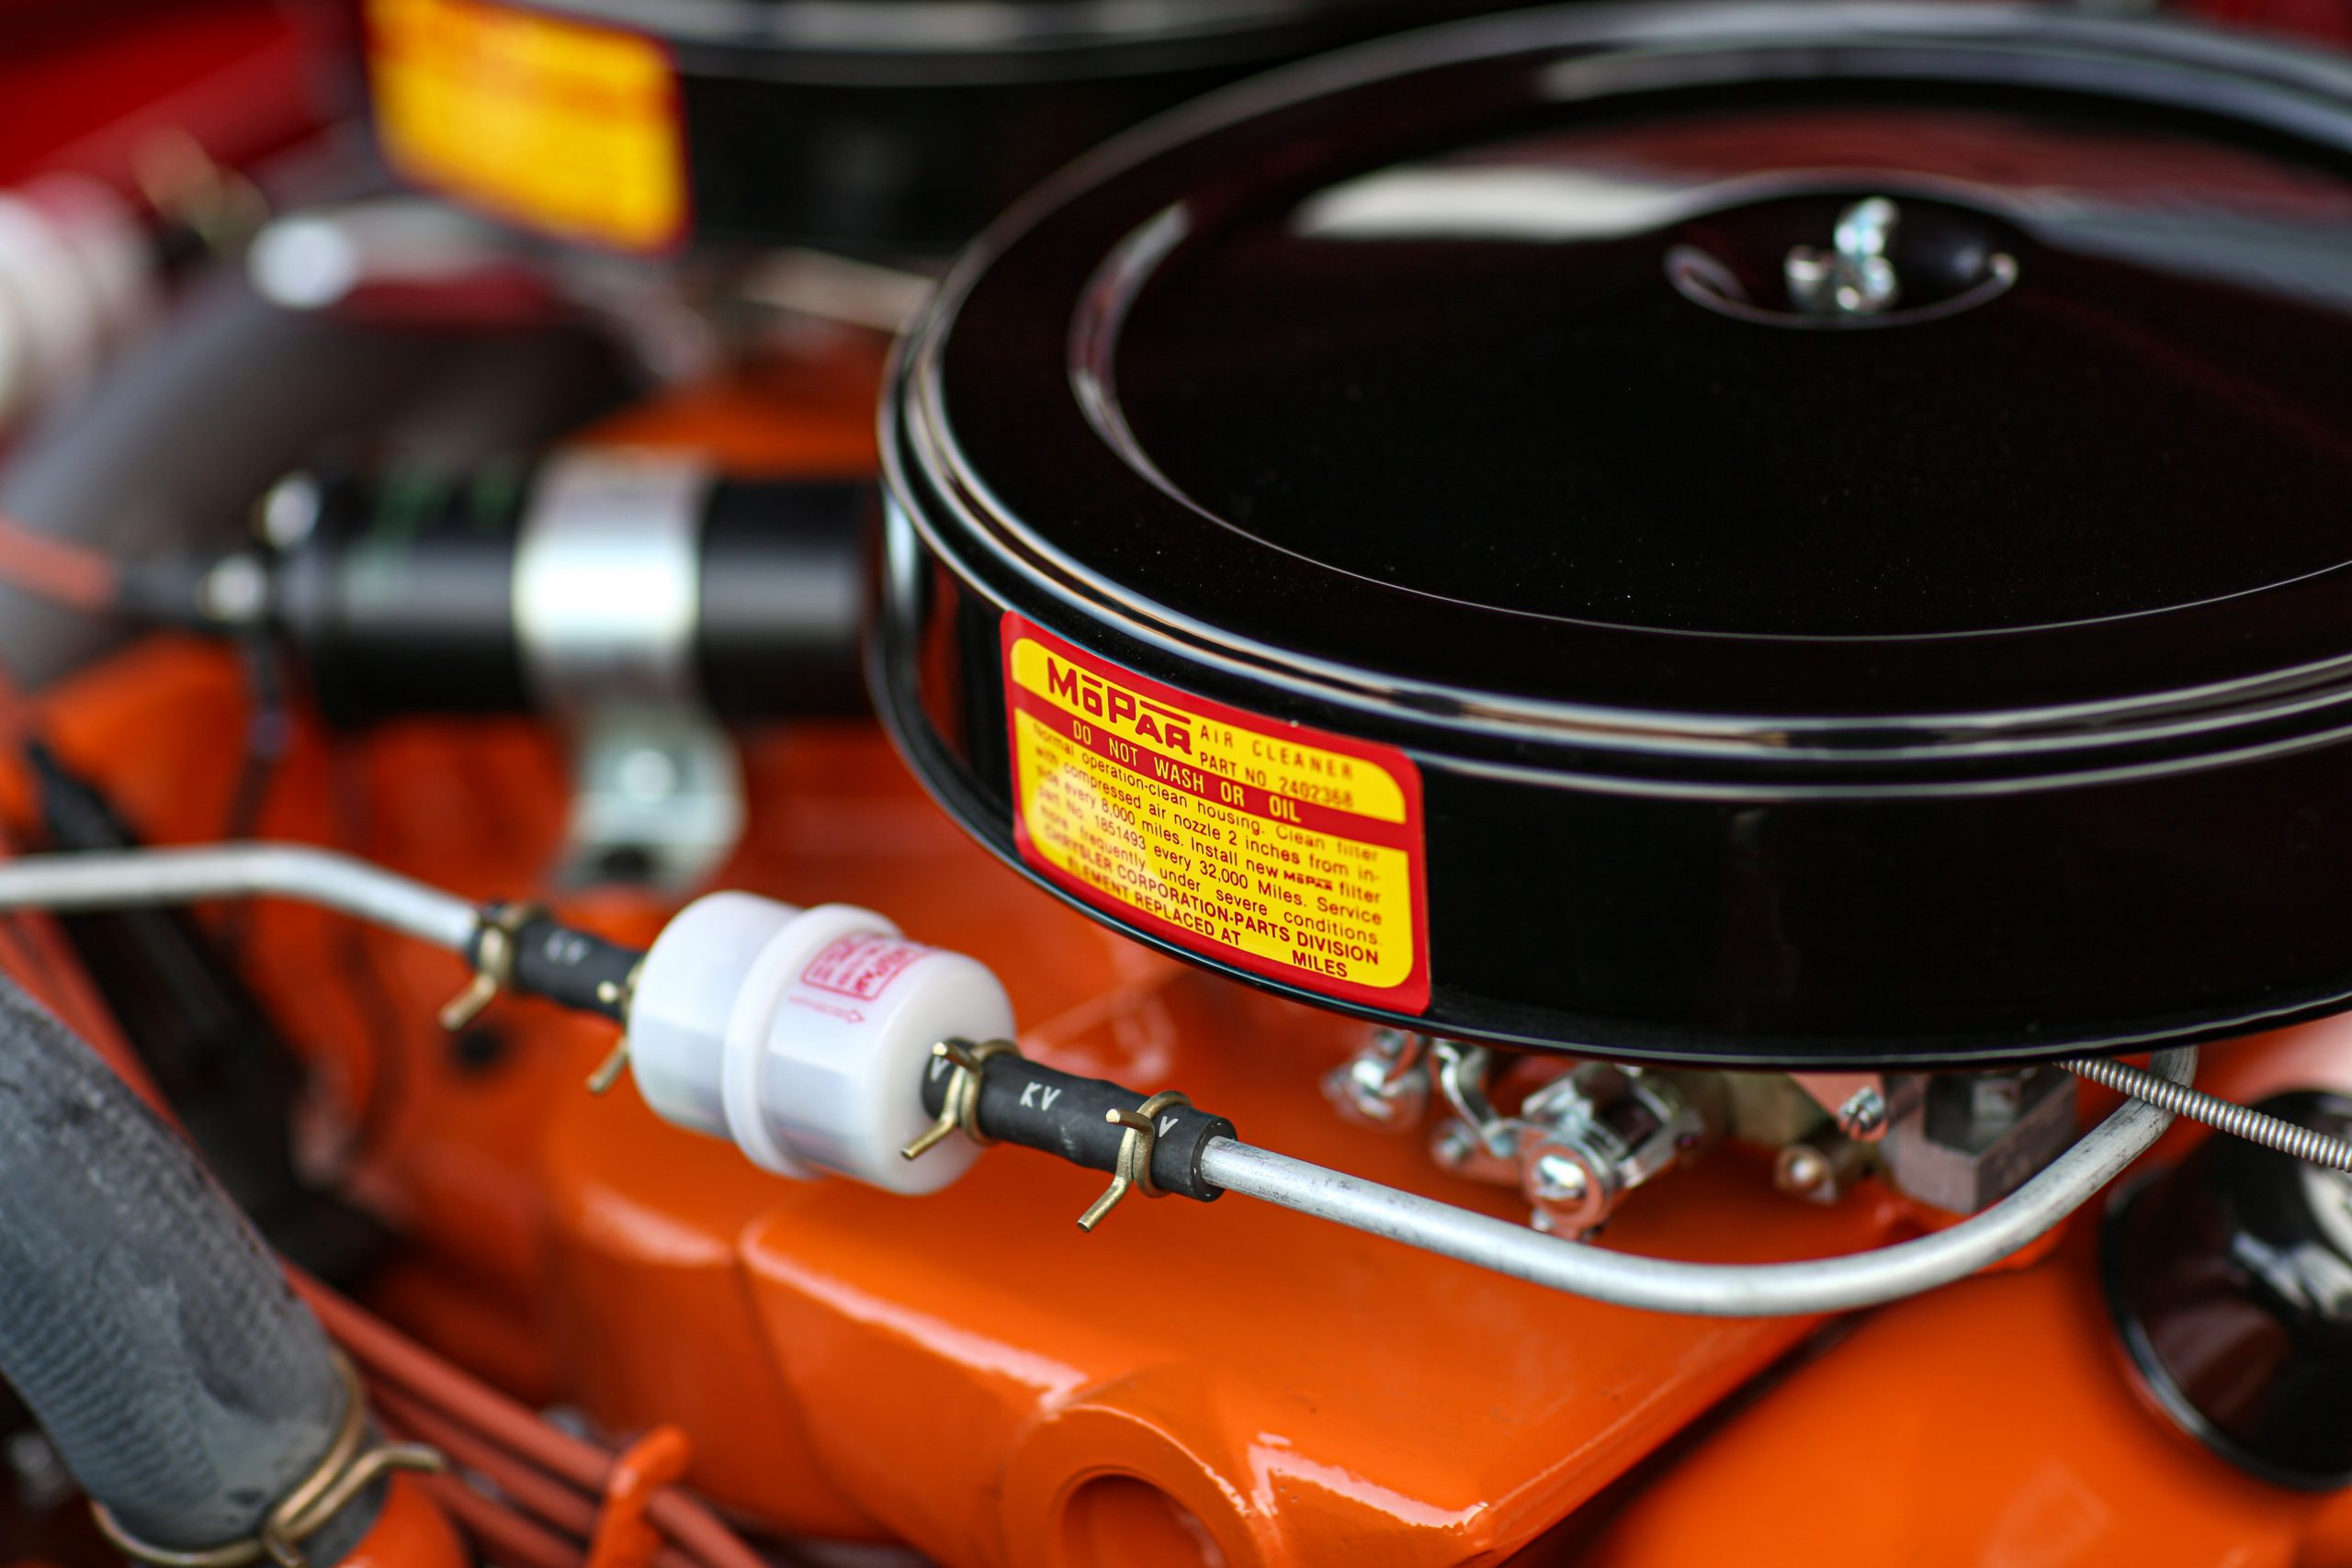 1963 Plymouth 426 Max Wedge lightweight air cleaner